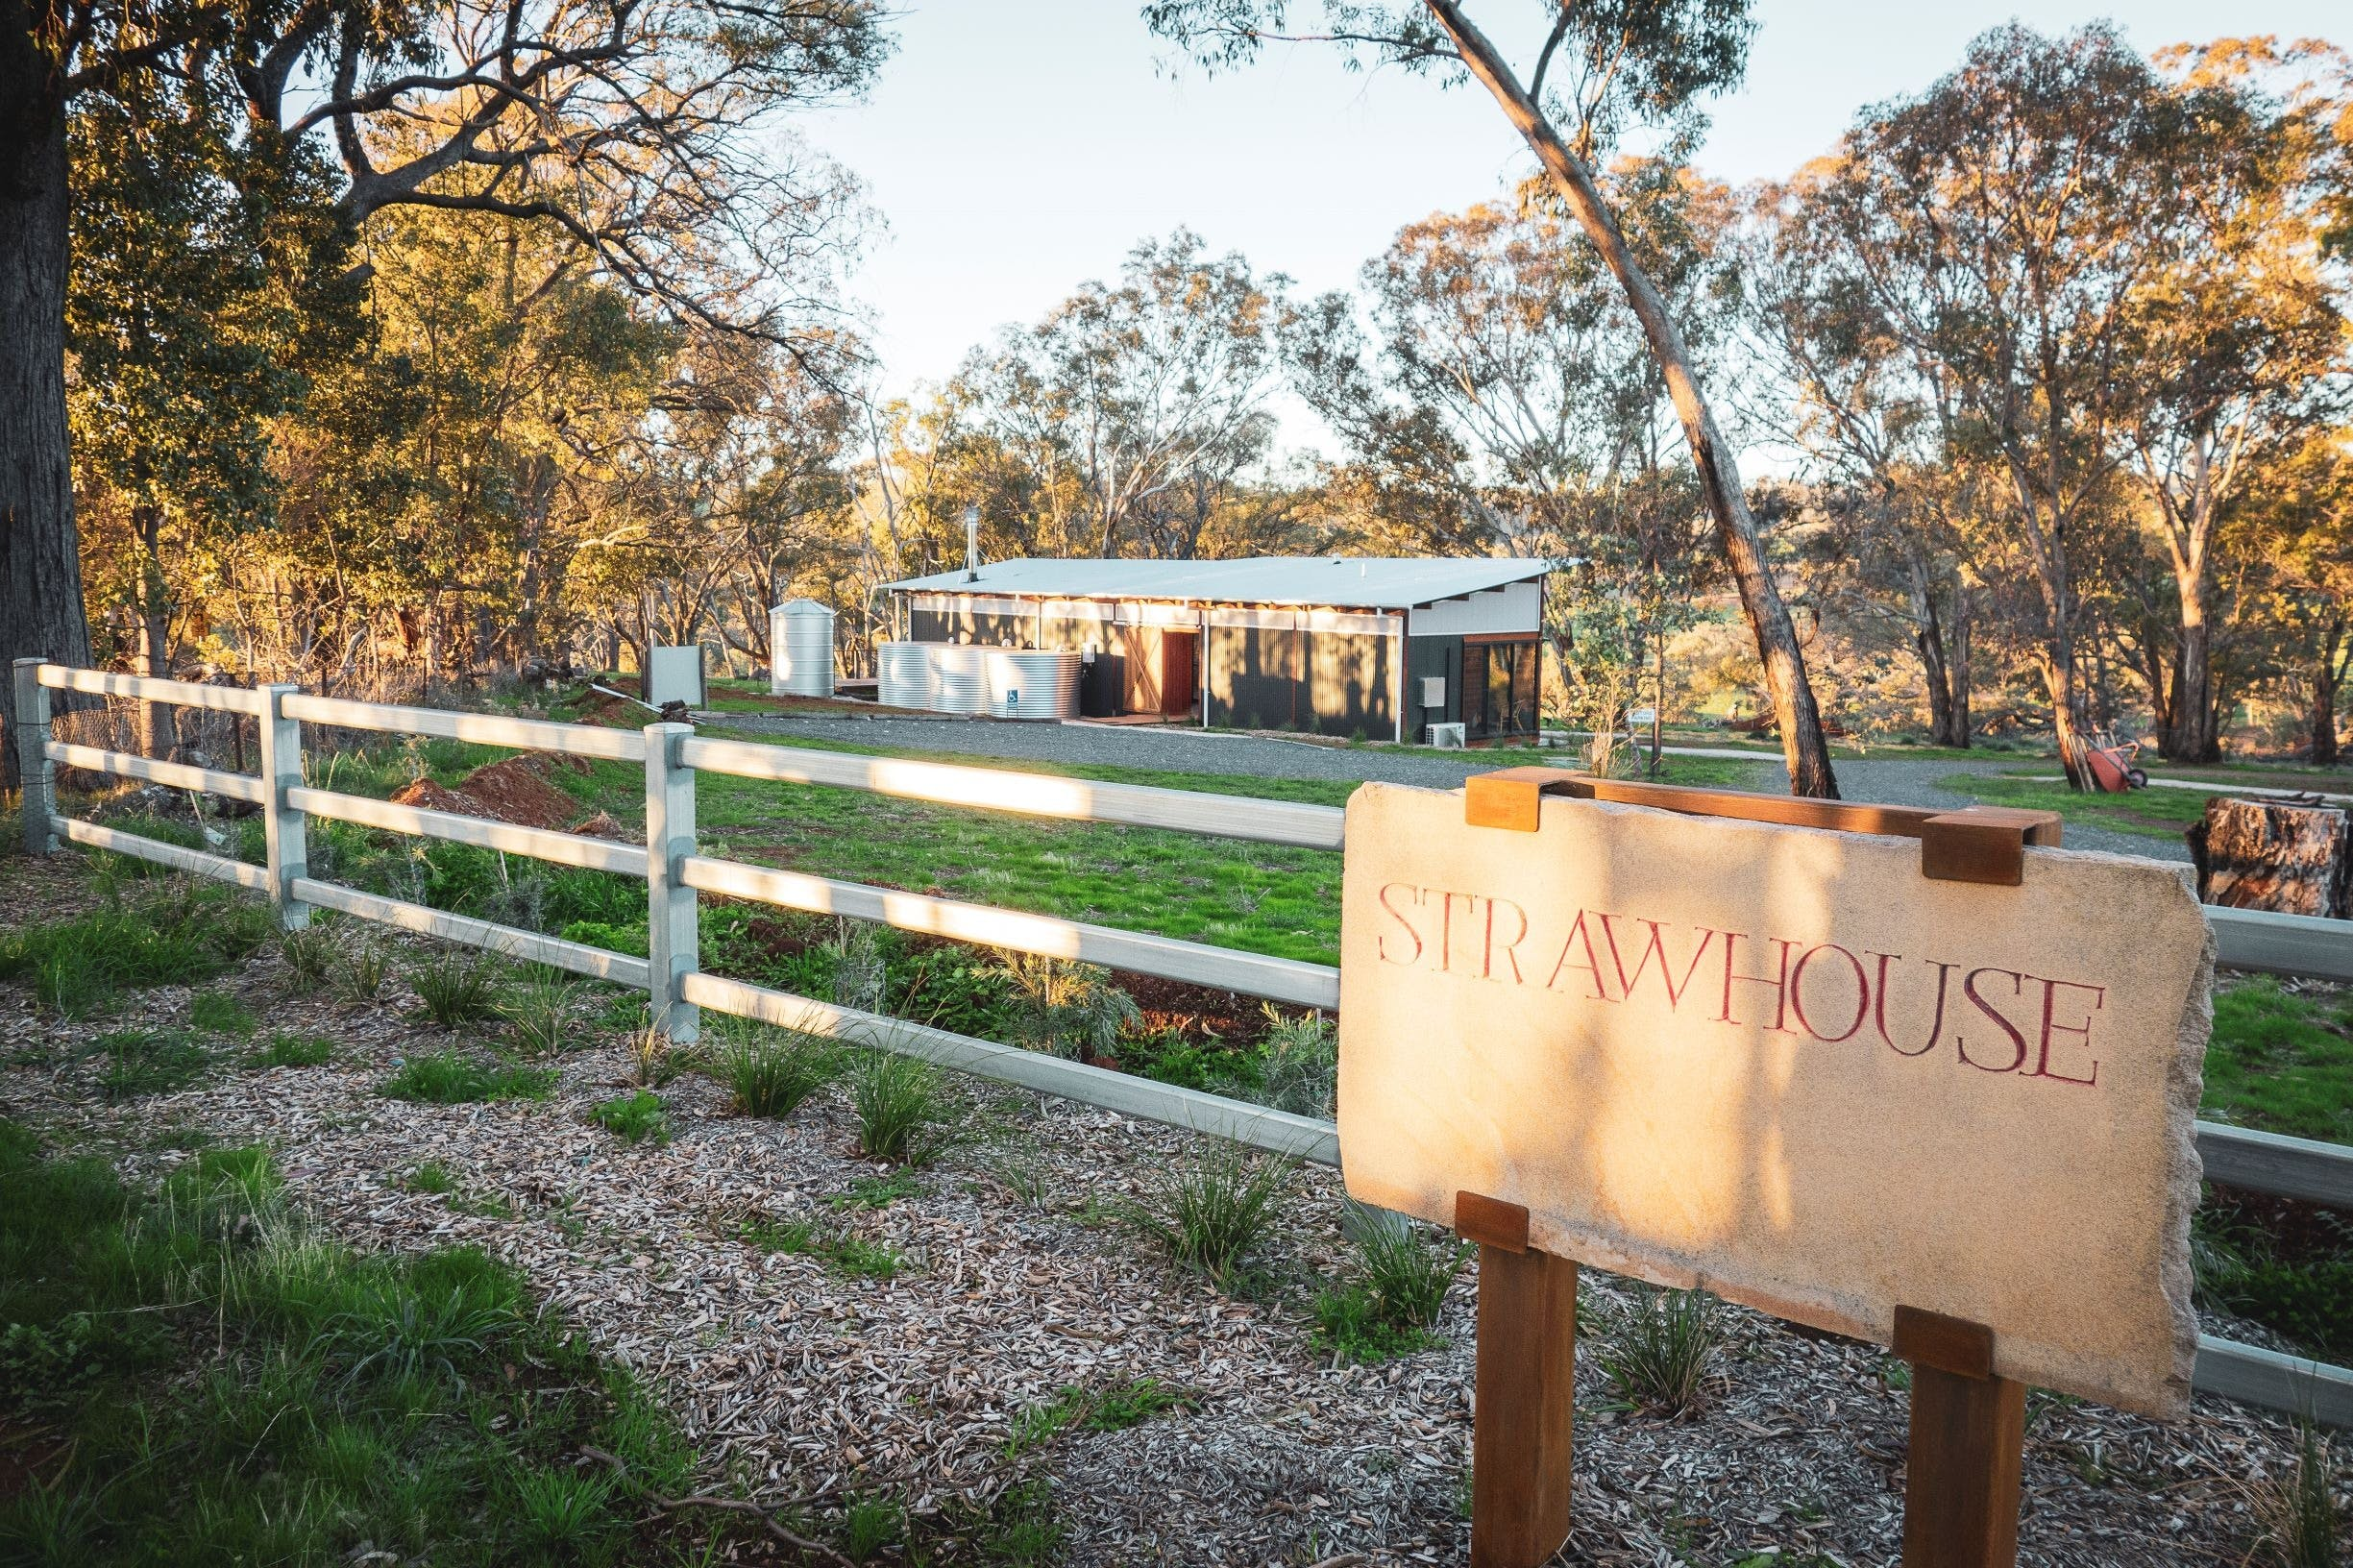 Strawhouse - Mount Gambier Accommodation